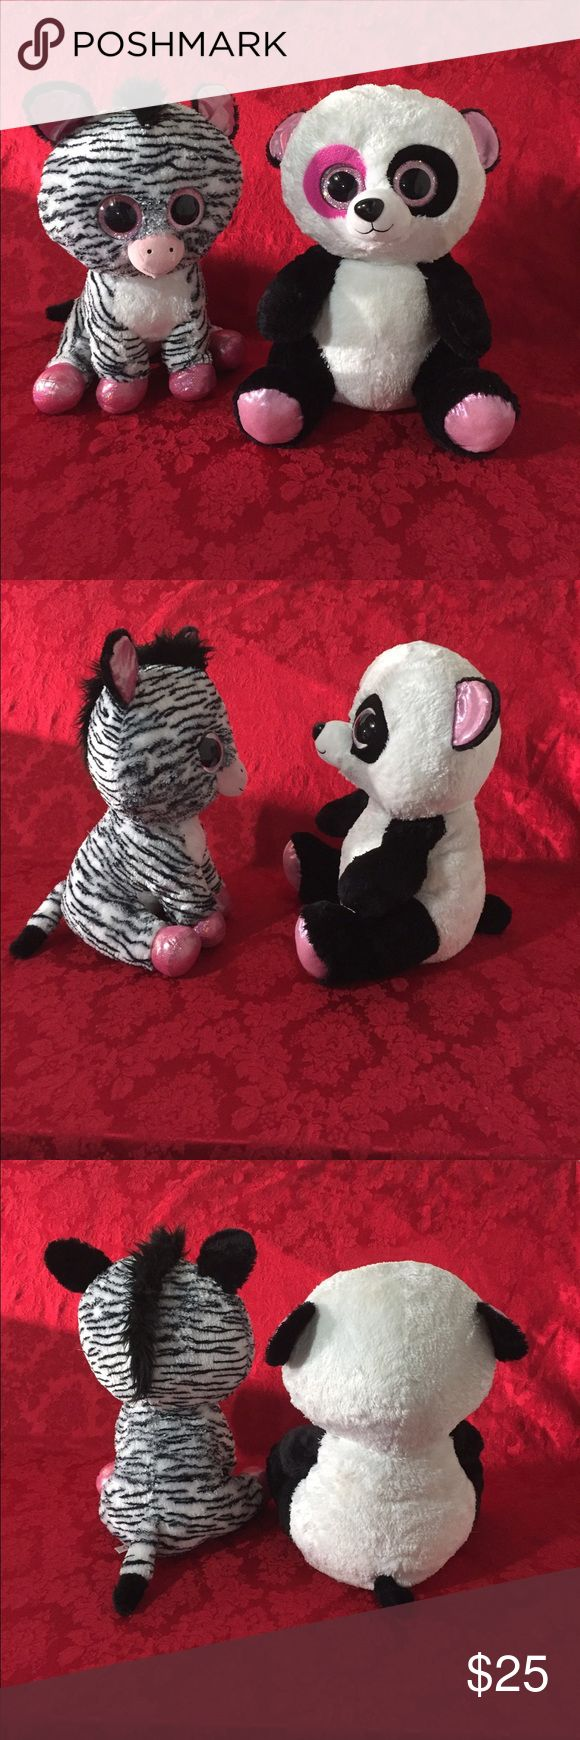 """2 Jumbo TY Big Beanie Boos Jumbo 17"""" inches tall You will get both of them.Names: Penny Panda & Izzy The Zebra. Both in excellent used condition. Both have a few marks on eyes but not really bad and both are HTF😊👍🏽 TY Accessories"""